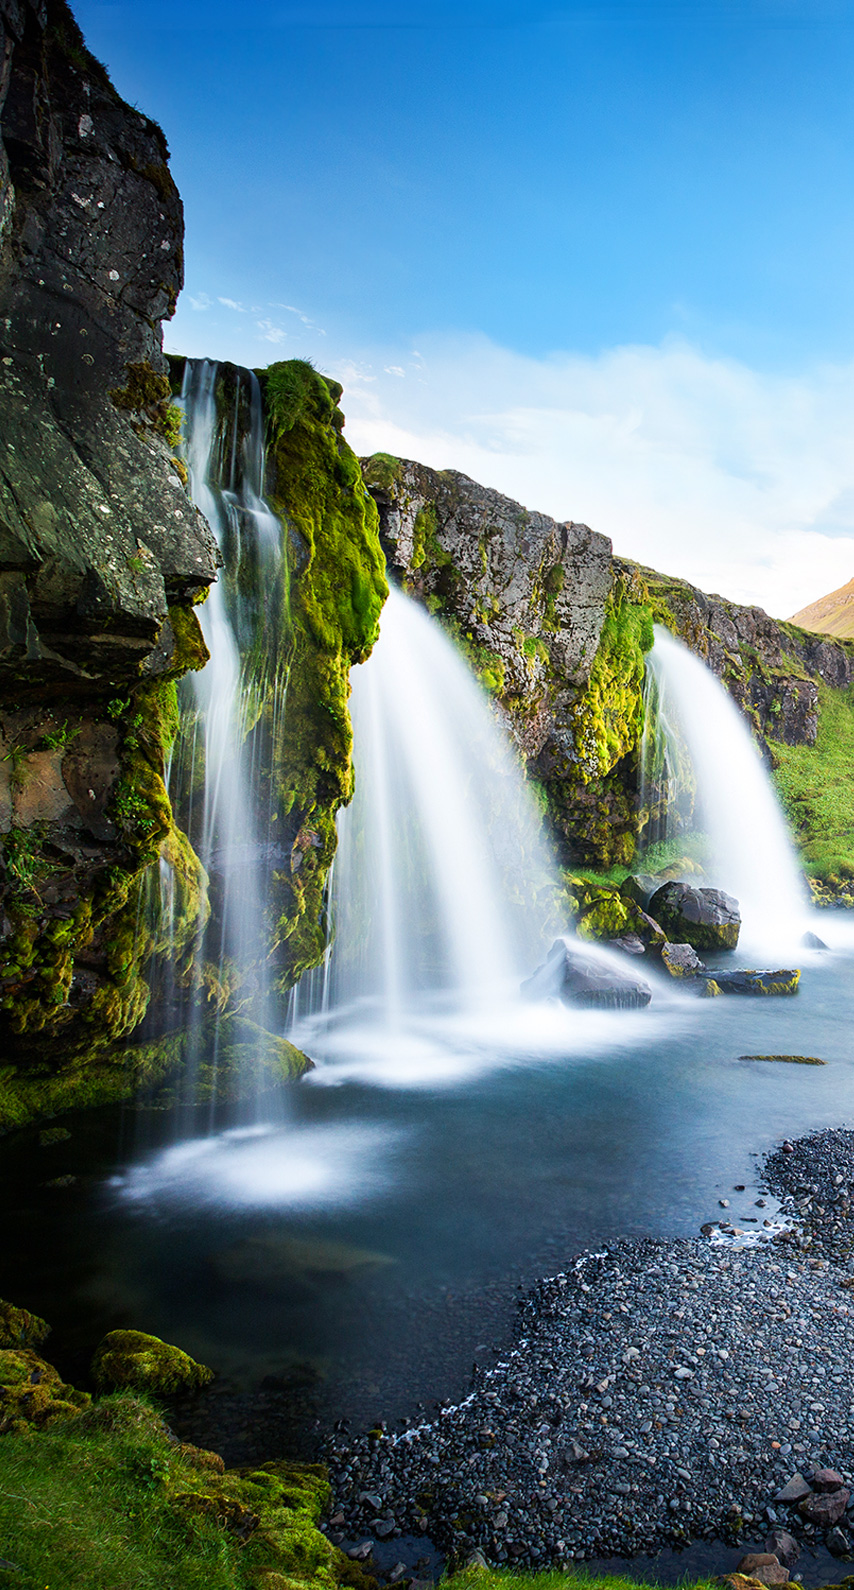 sunset, rock, tree, valley, summer, waterfall, coffee, mountain, no person, outdoors, scenic, stream